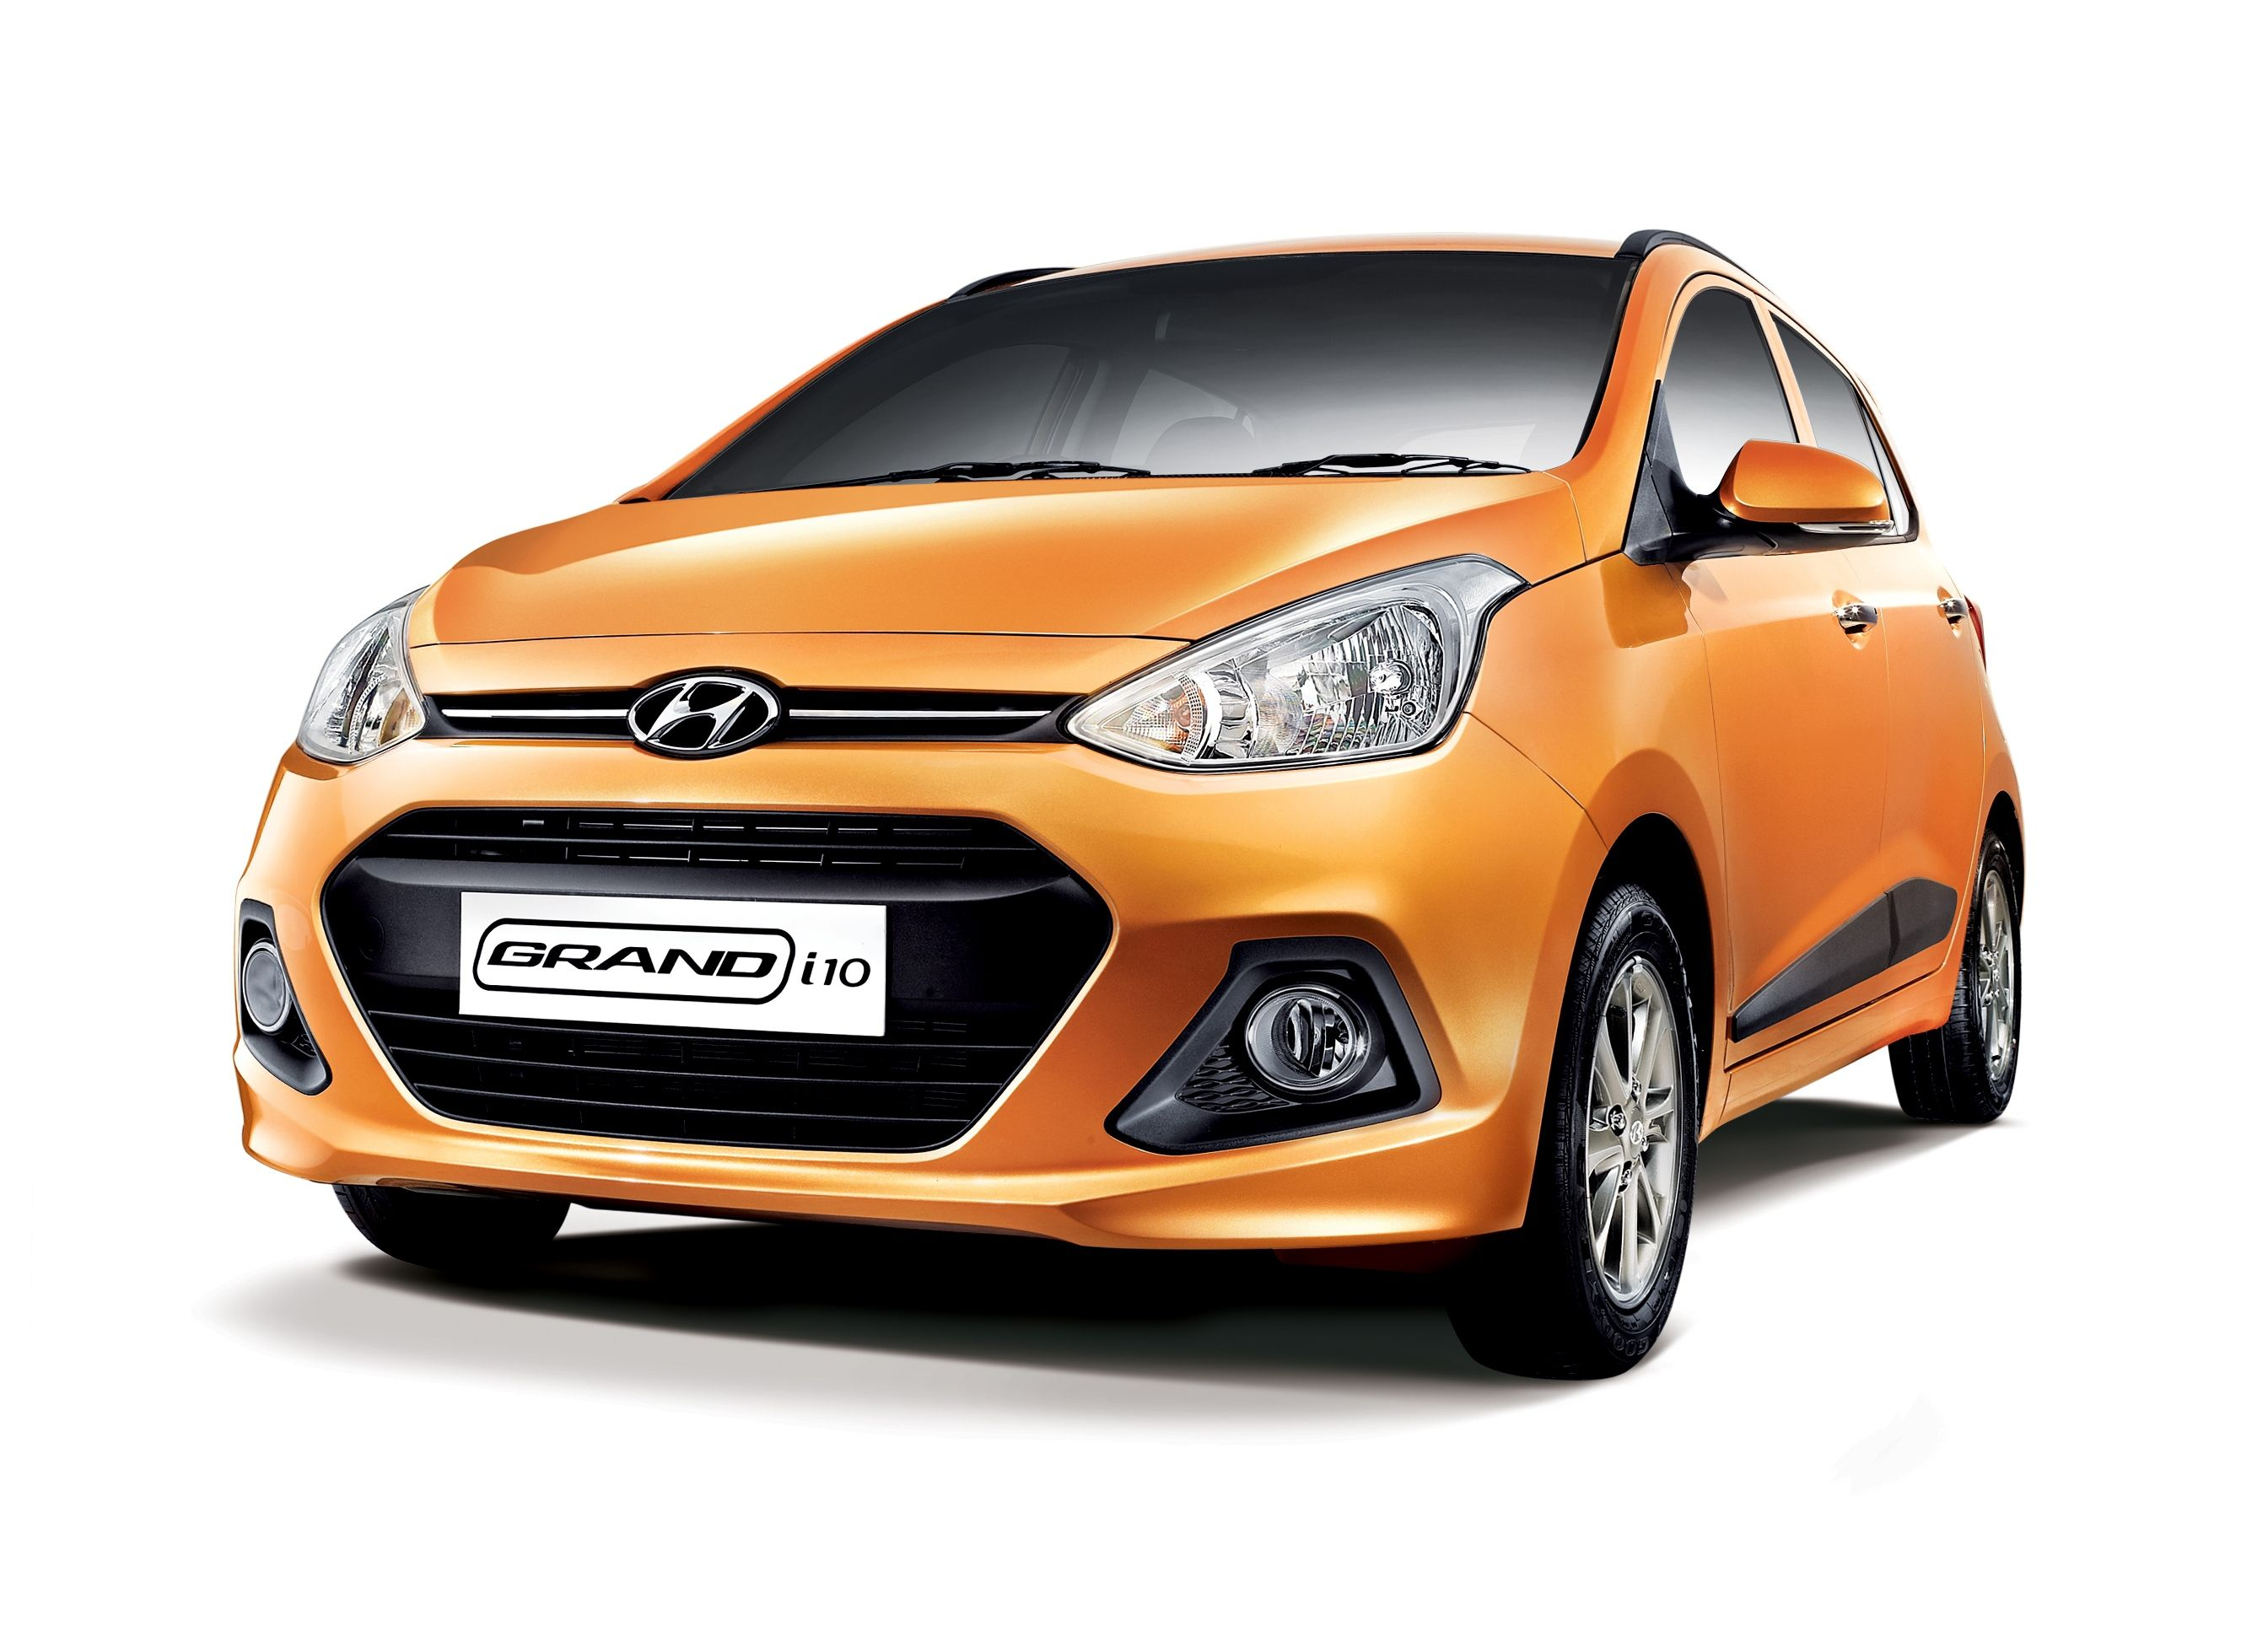 Get all new hyundai car listings in india check out quikrcars to find great offers